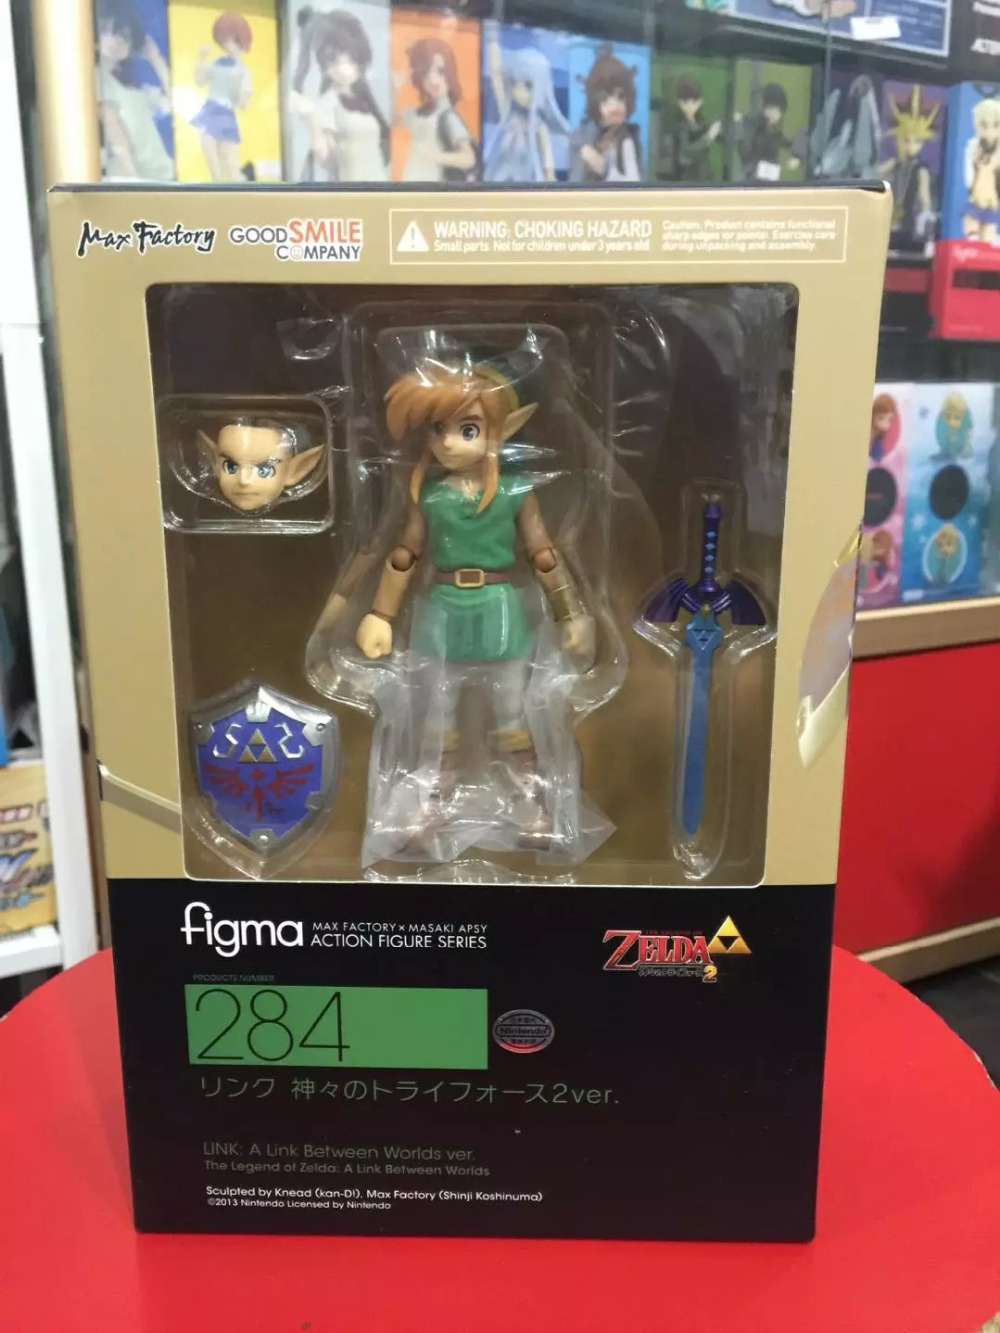 Figma 284 The Legend of Zelda PVC Figure Action Model Toys Doll Gifts For Children